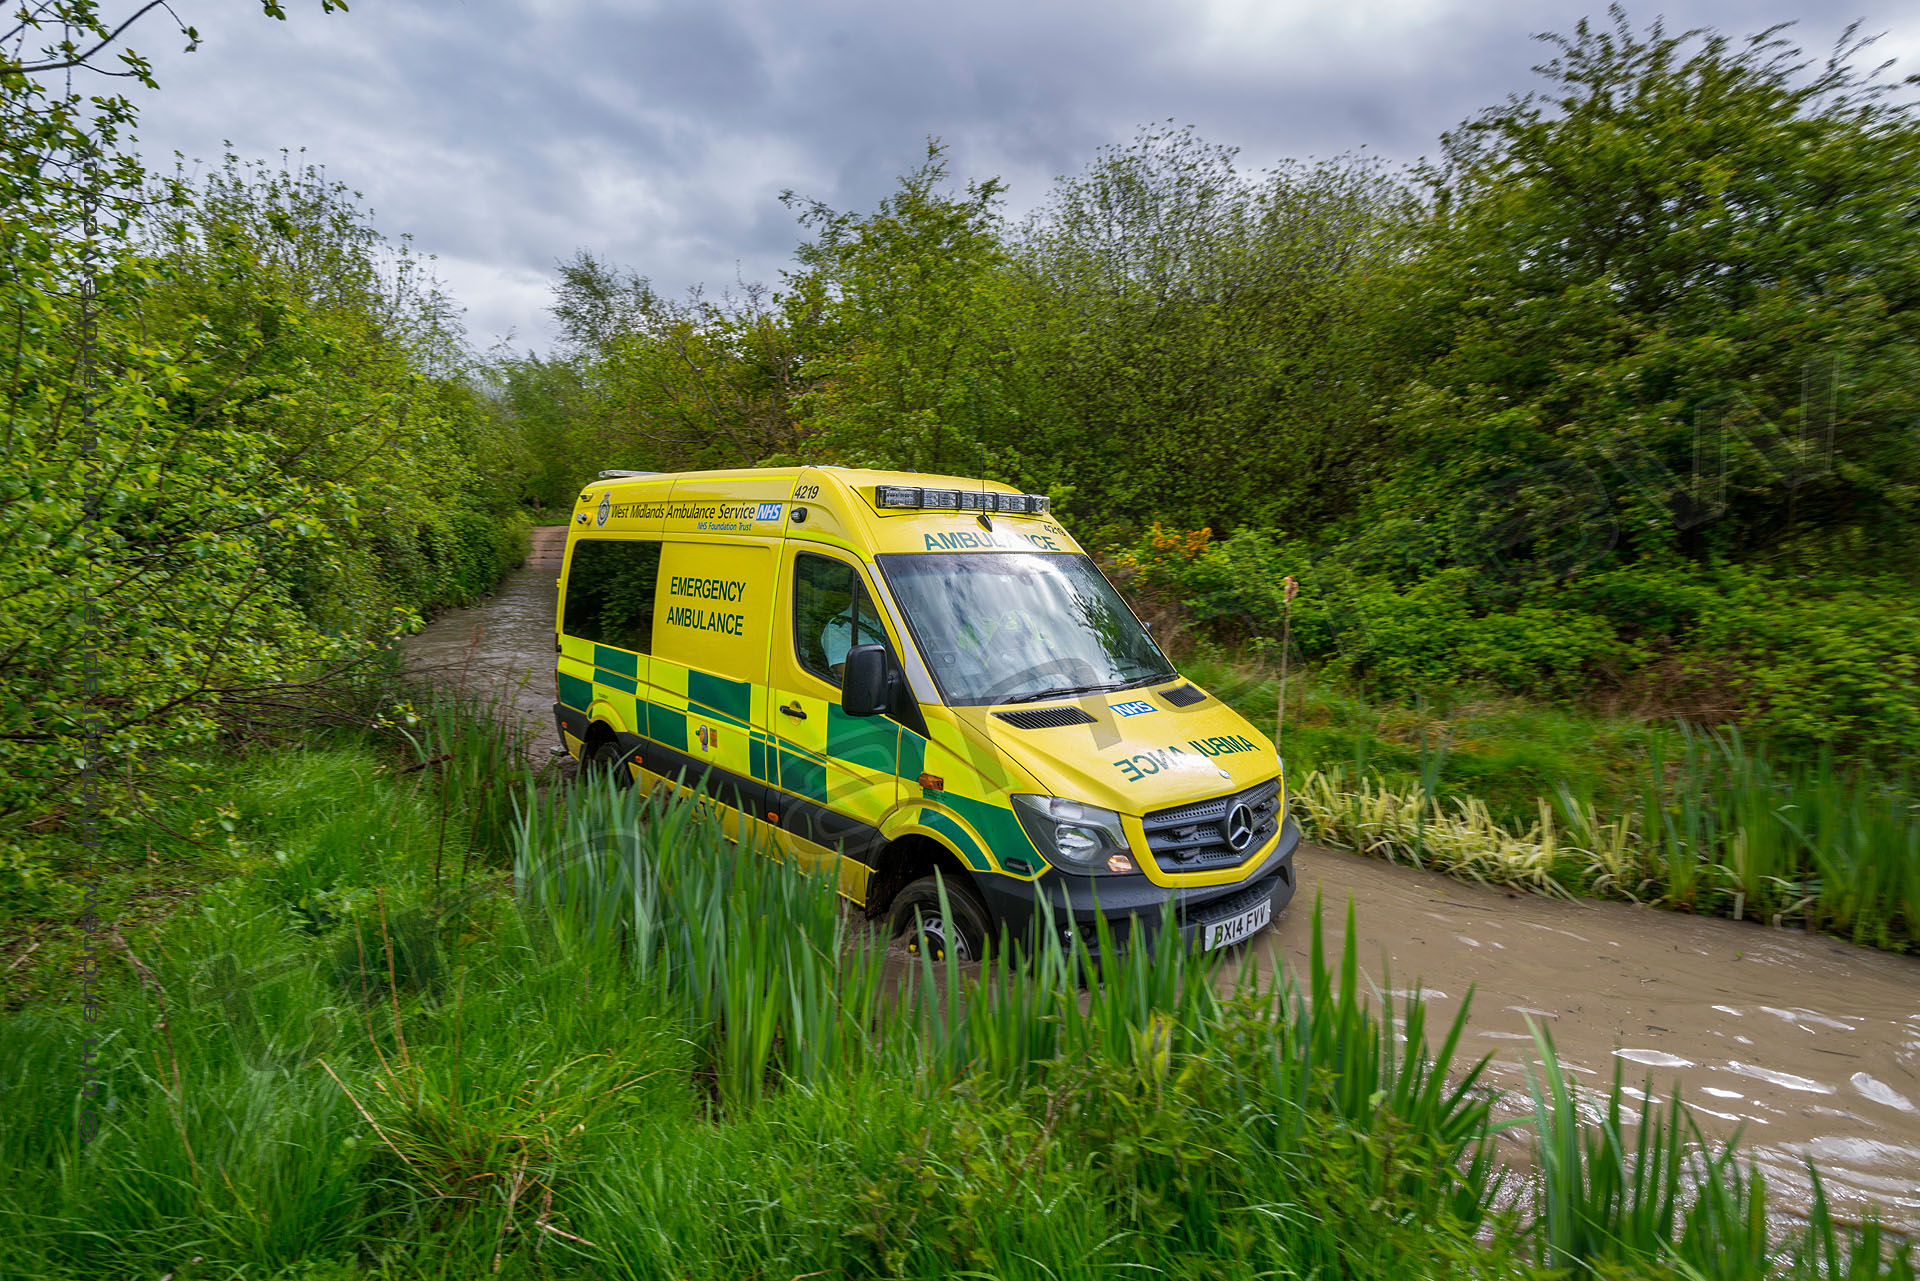 West Midlands Ambulance Service 4x4 Sprinter wading